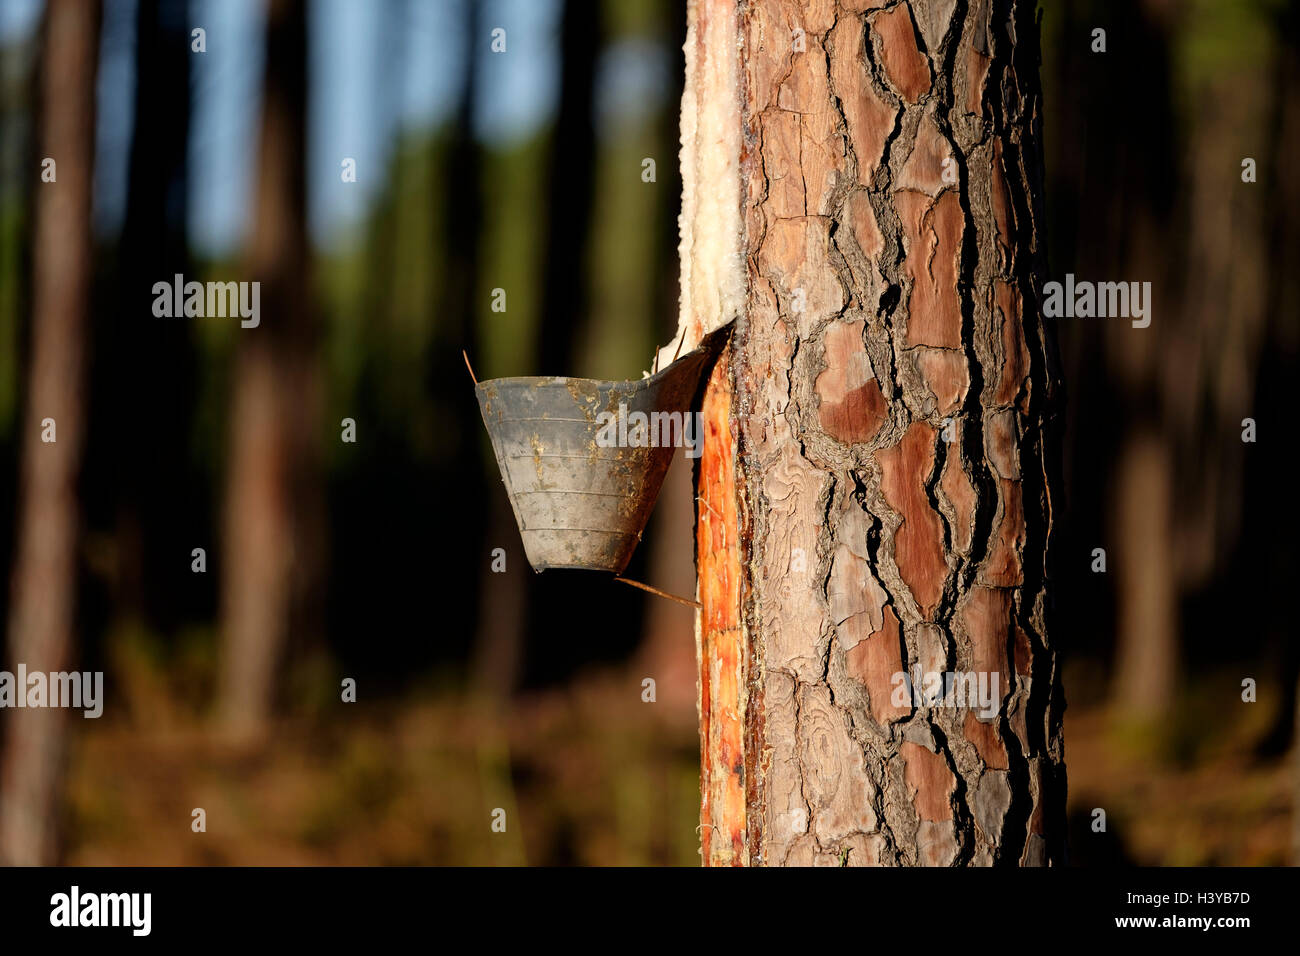 Resin extraction on pine tree Stock Photo